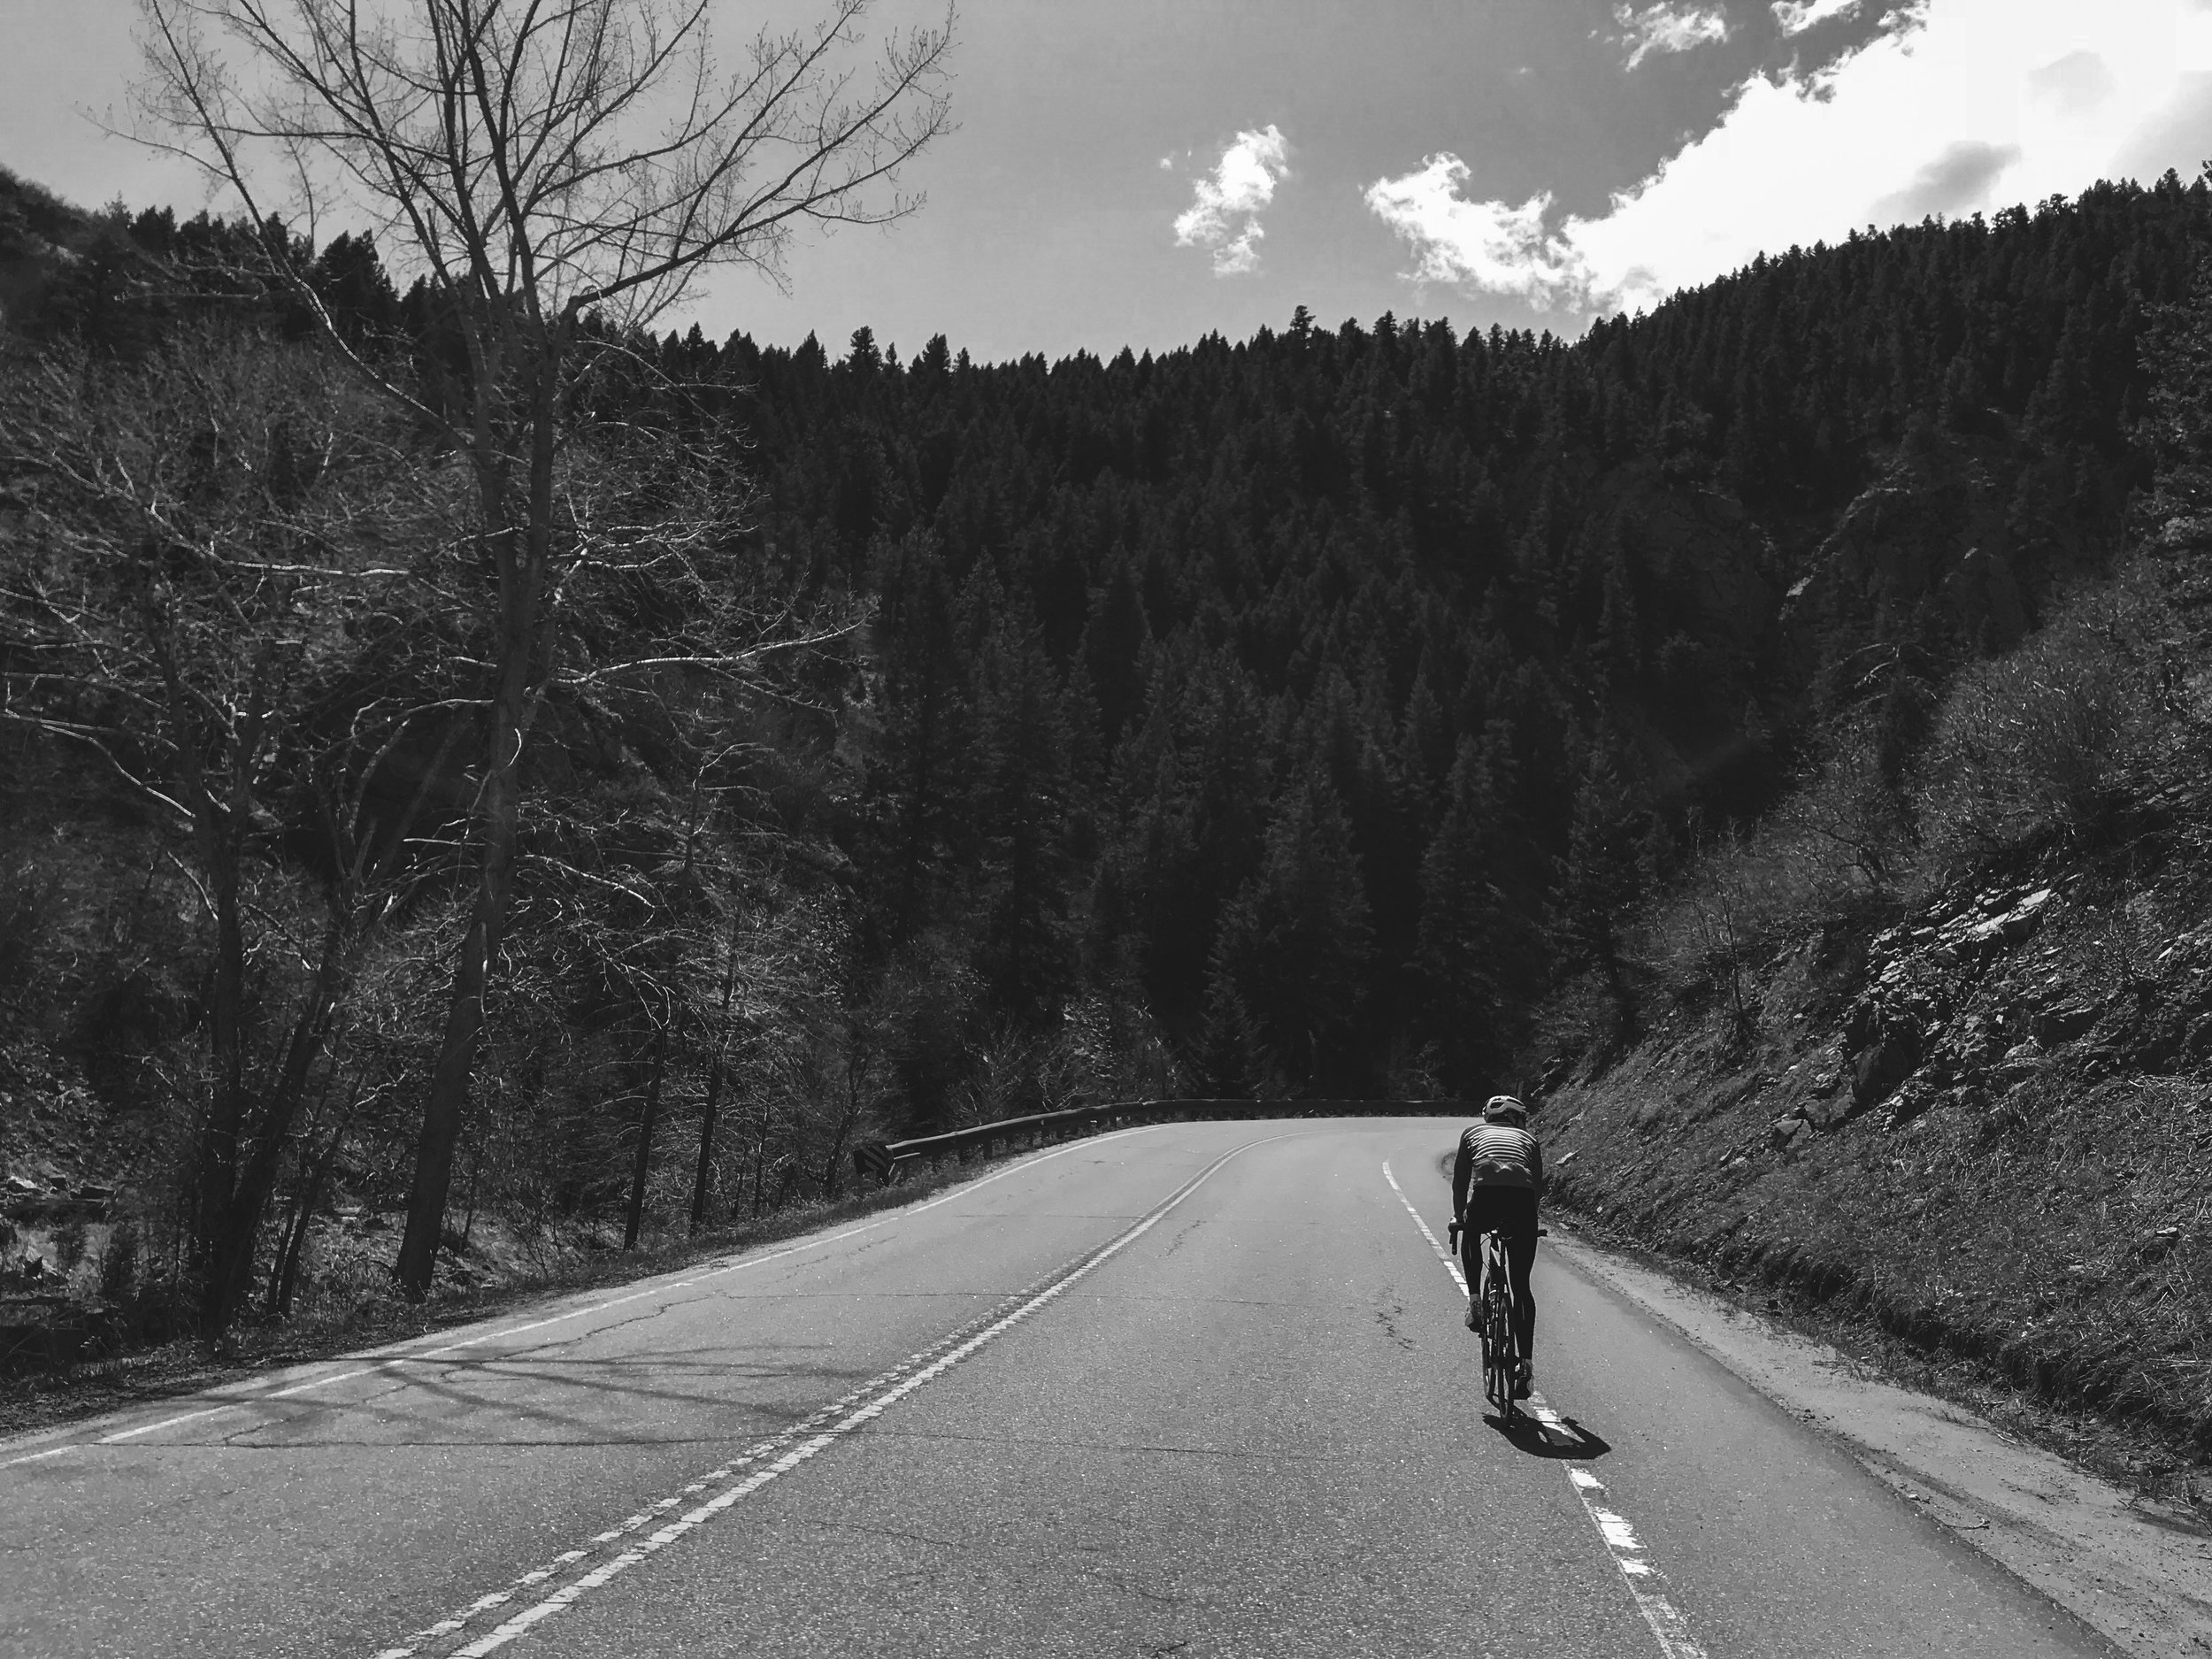 Day 2 - Chatfield State Park > Deer Creek Canyon & High Grade Road